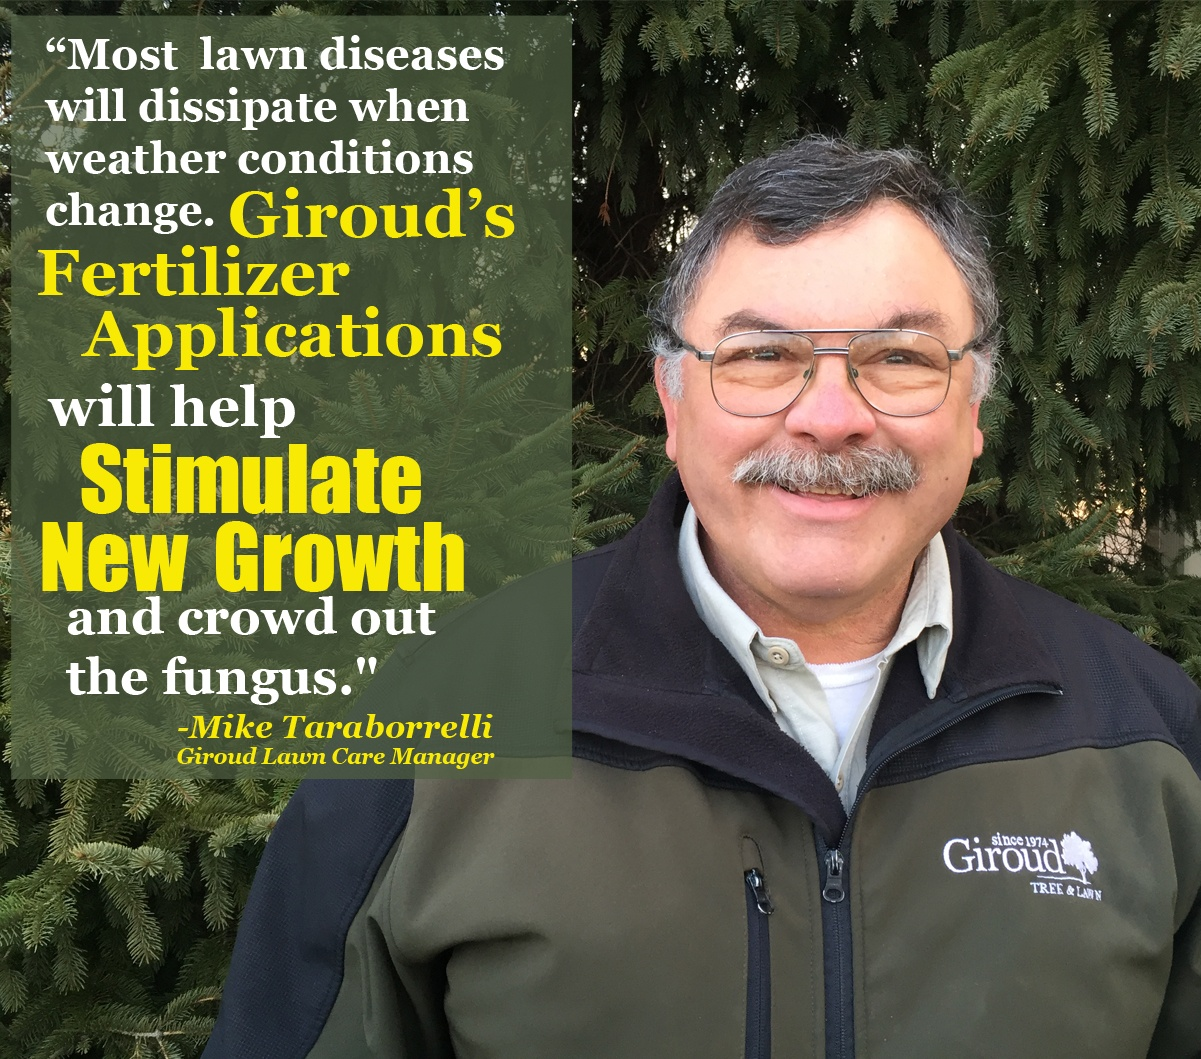 2018-Lawn-Fungal-Diseaseas-You-Need-to-Watch-Out-For-Mike-T-1